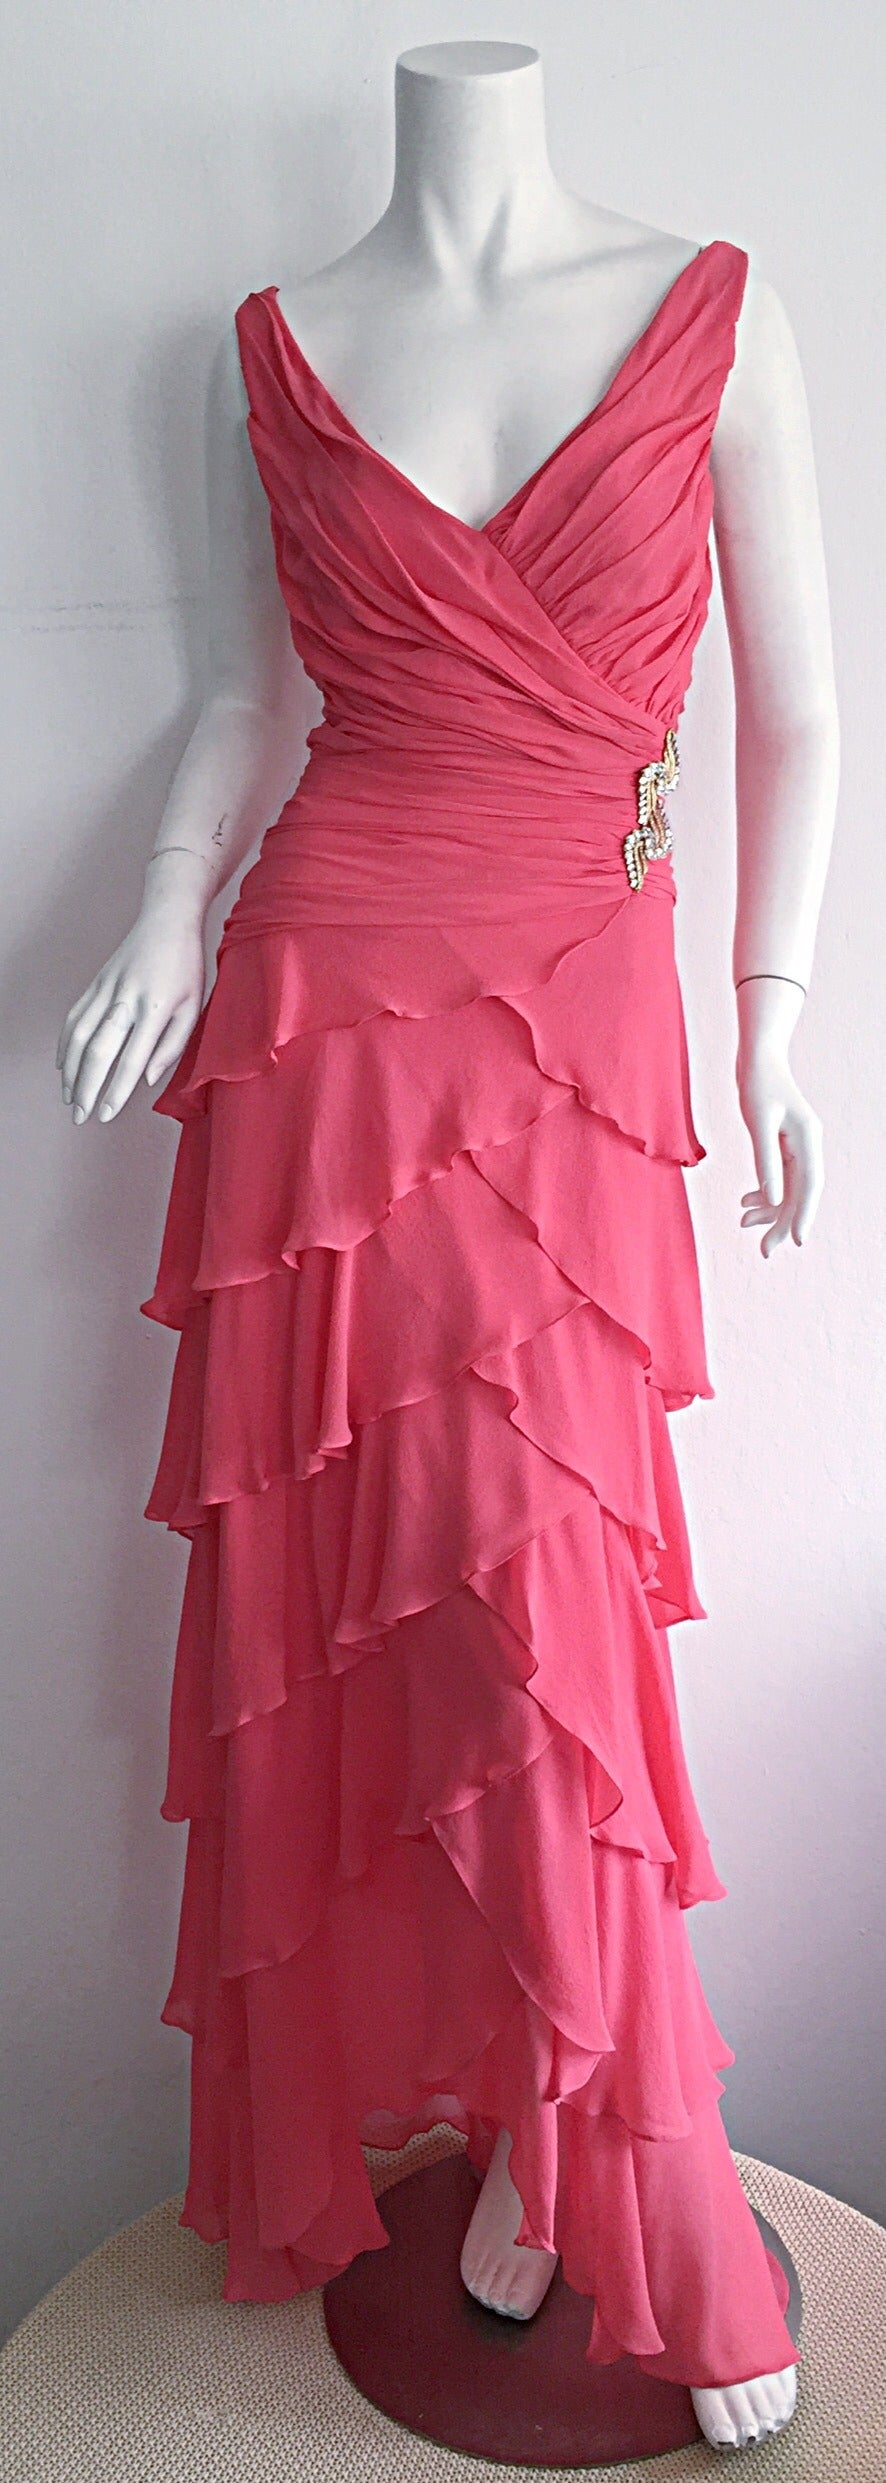 Beautiful 1990s Vintage Tadashi Shoji Pink Silk Chiffon Tiered Dress For Sale 4